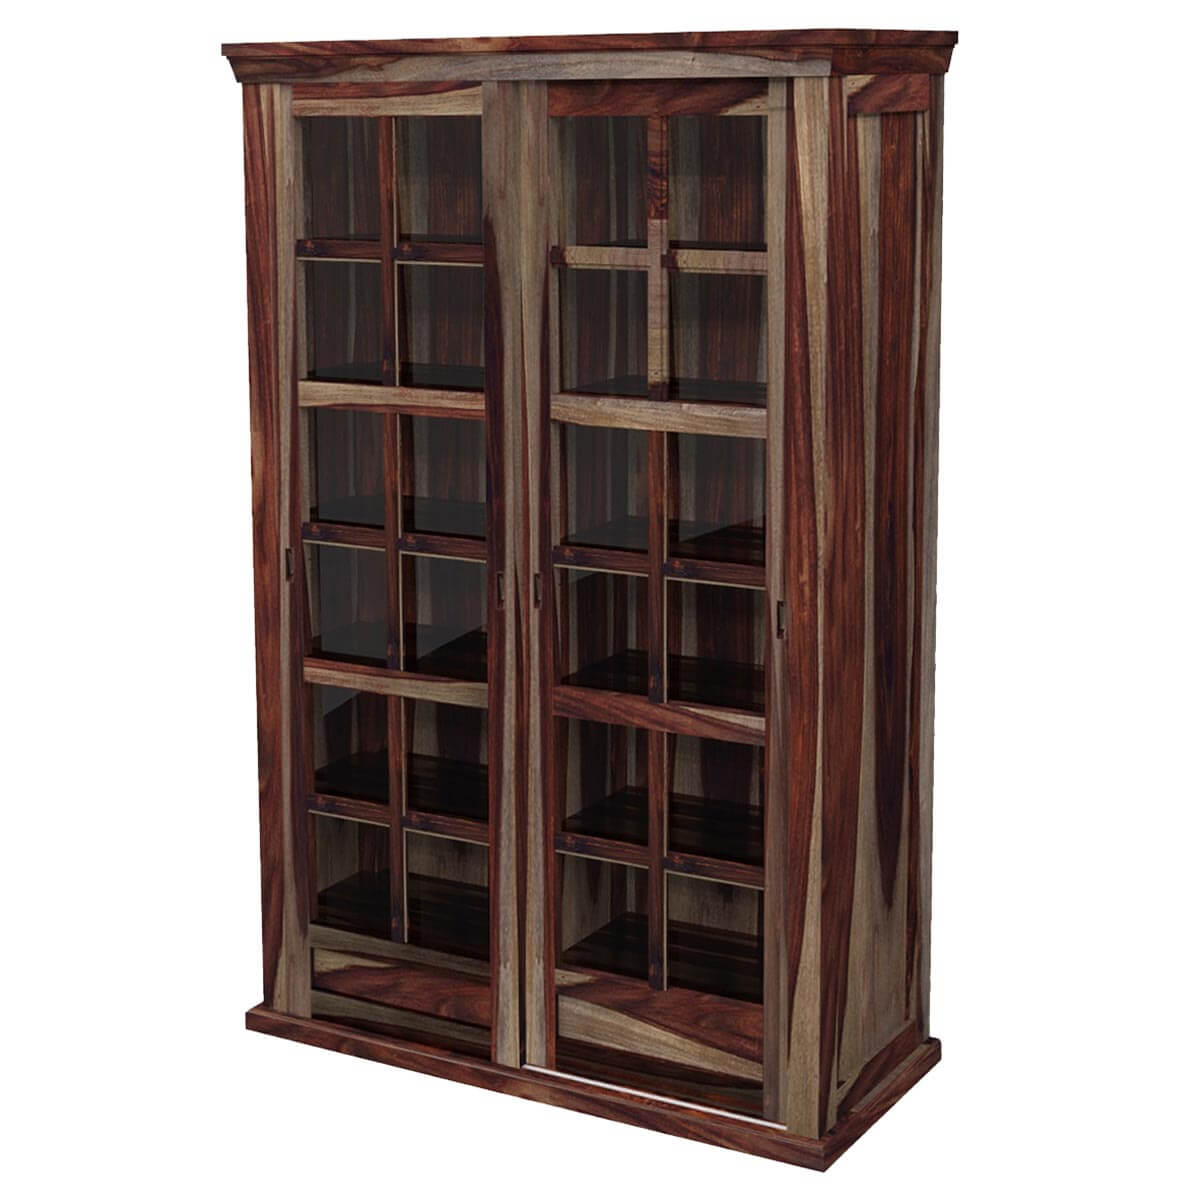 Wooden Storage Cabinets ~ Solid wood rustic glass door large storage cabinet